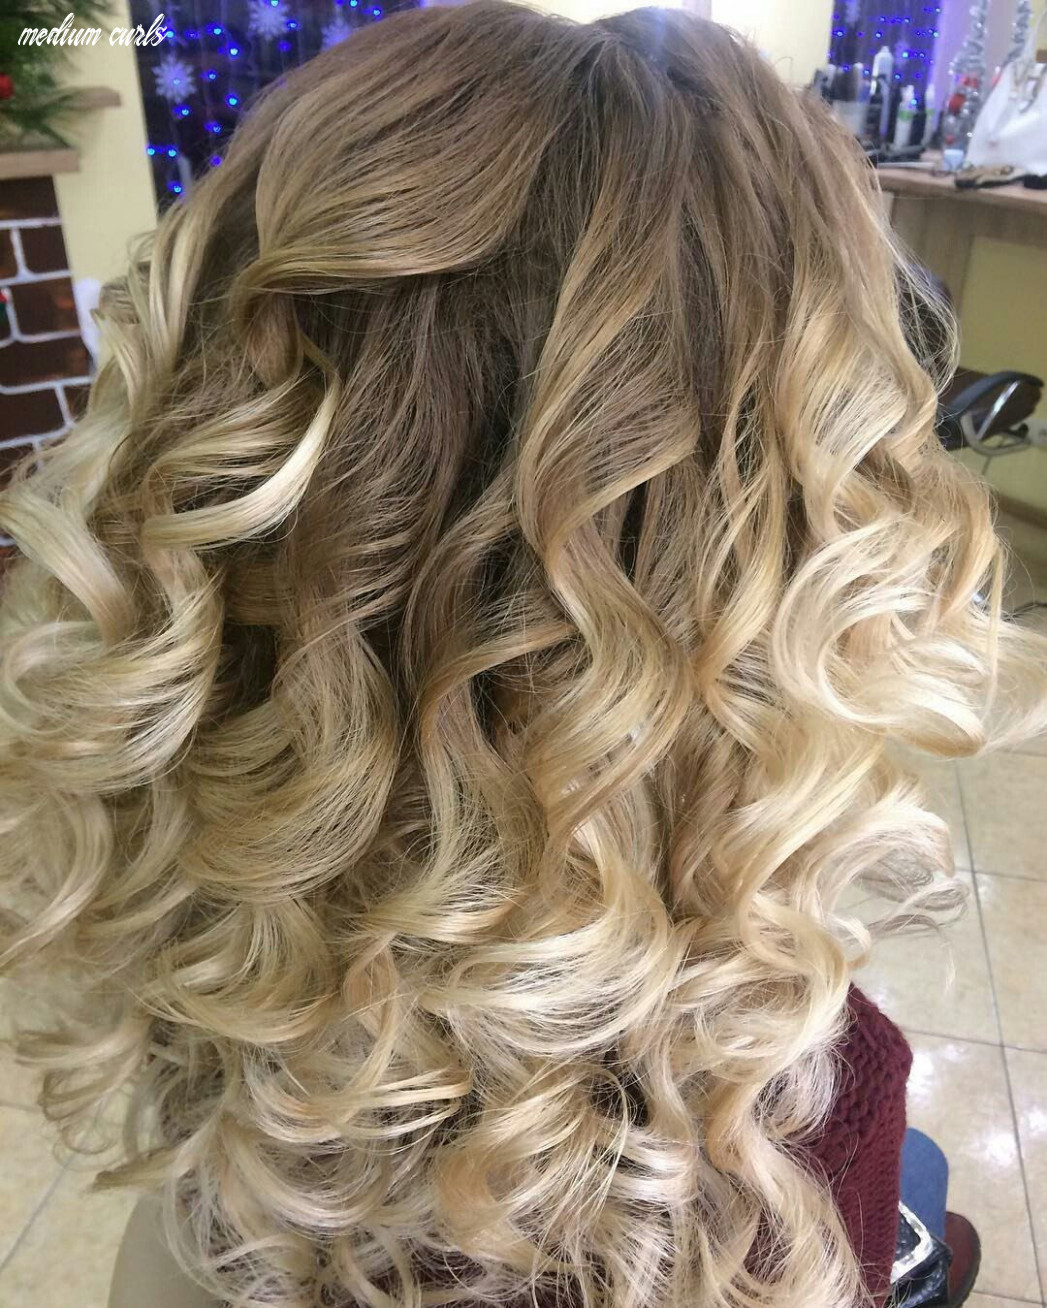 Hairstyles for medium hair with curls emo loose curls for medium